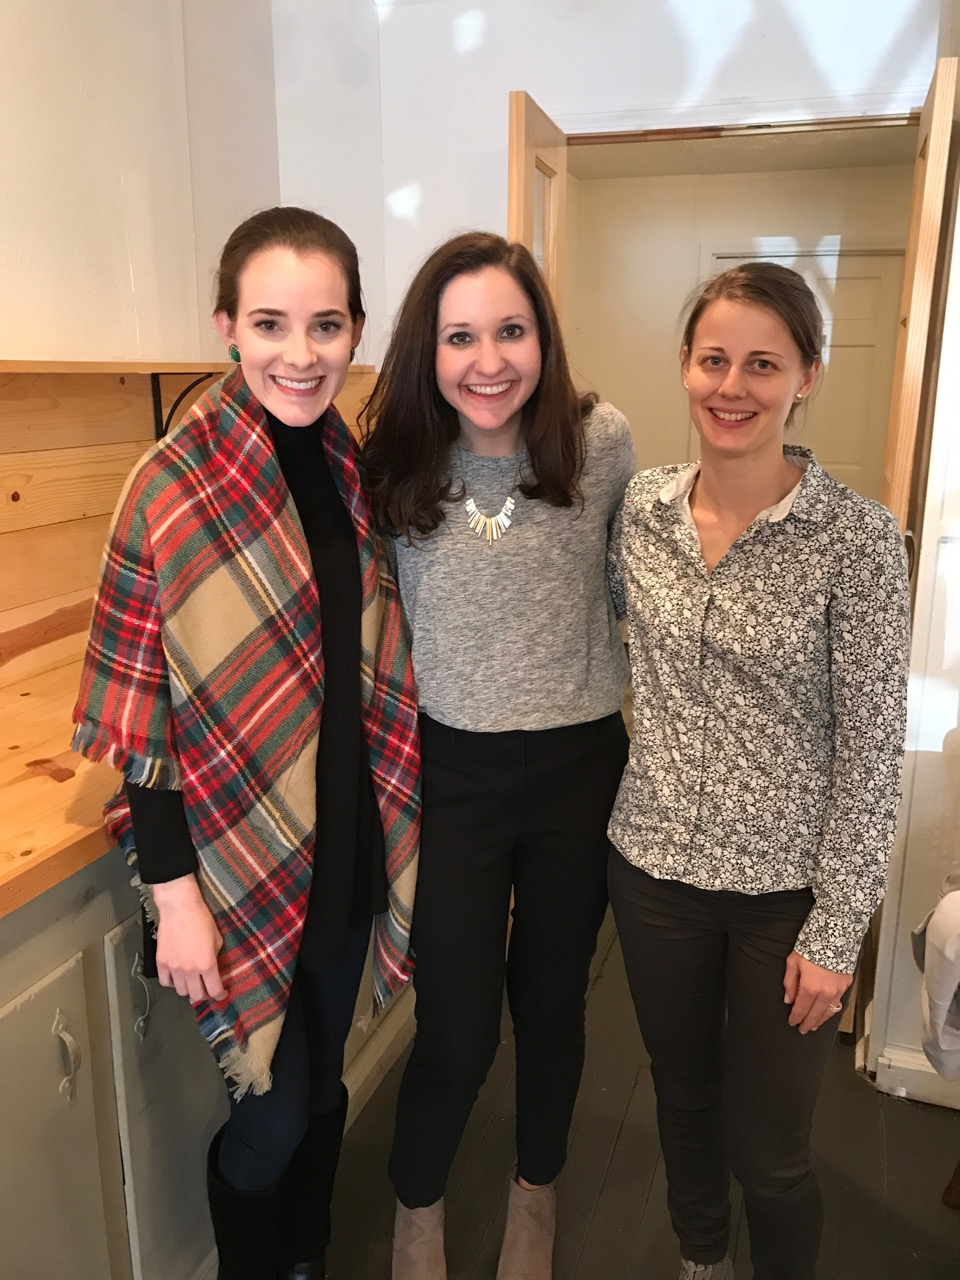 A few days before New Year's, we (Matt, myself and our friend Stephanie) got to host a party for two sweet friends who got engaged. The couple met on our Hungary mission trip! We also celebrated by having a coffee date with a few girls at Mugs.